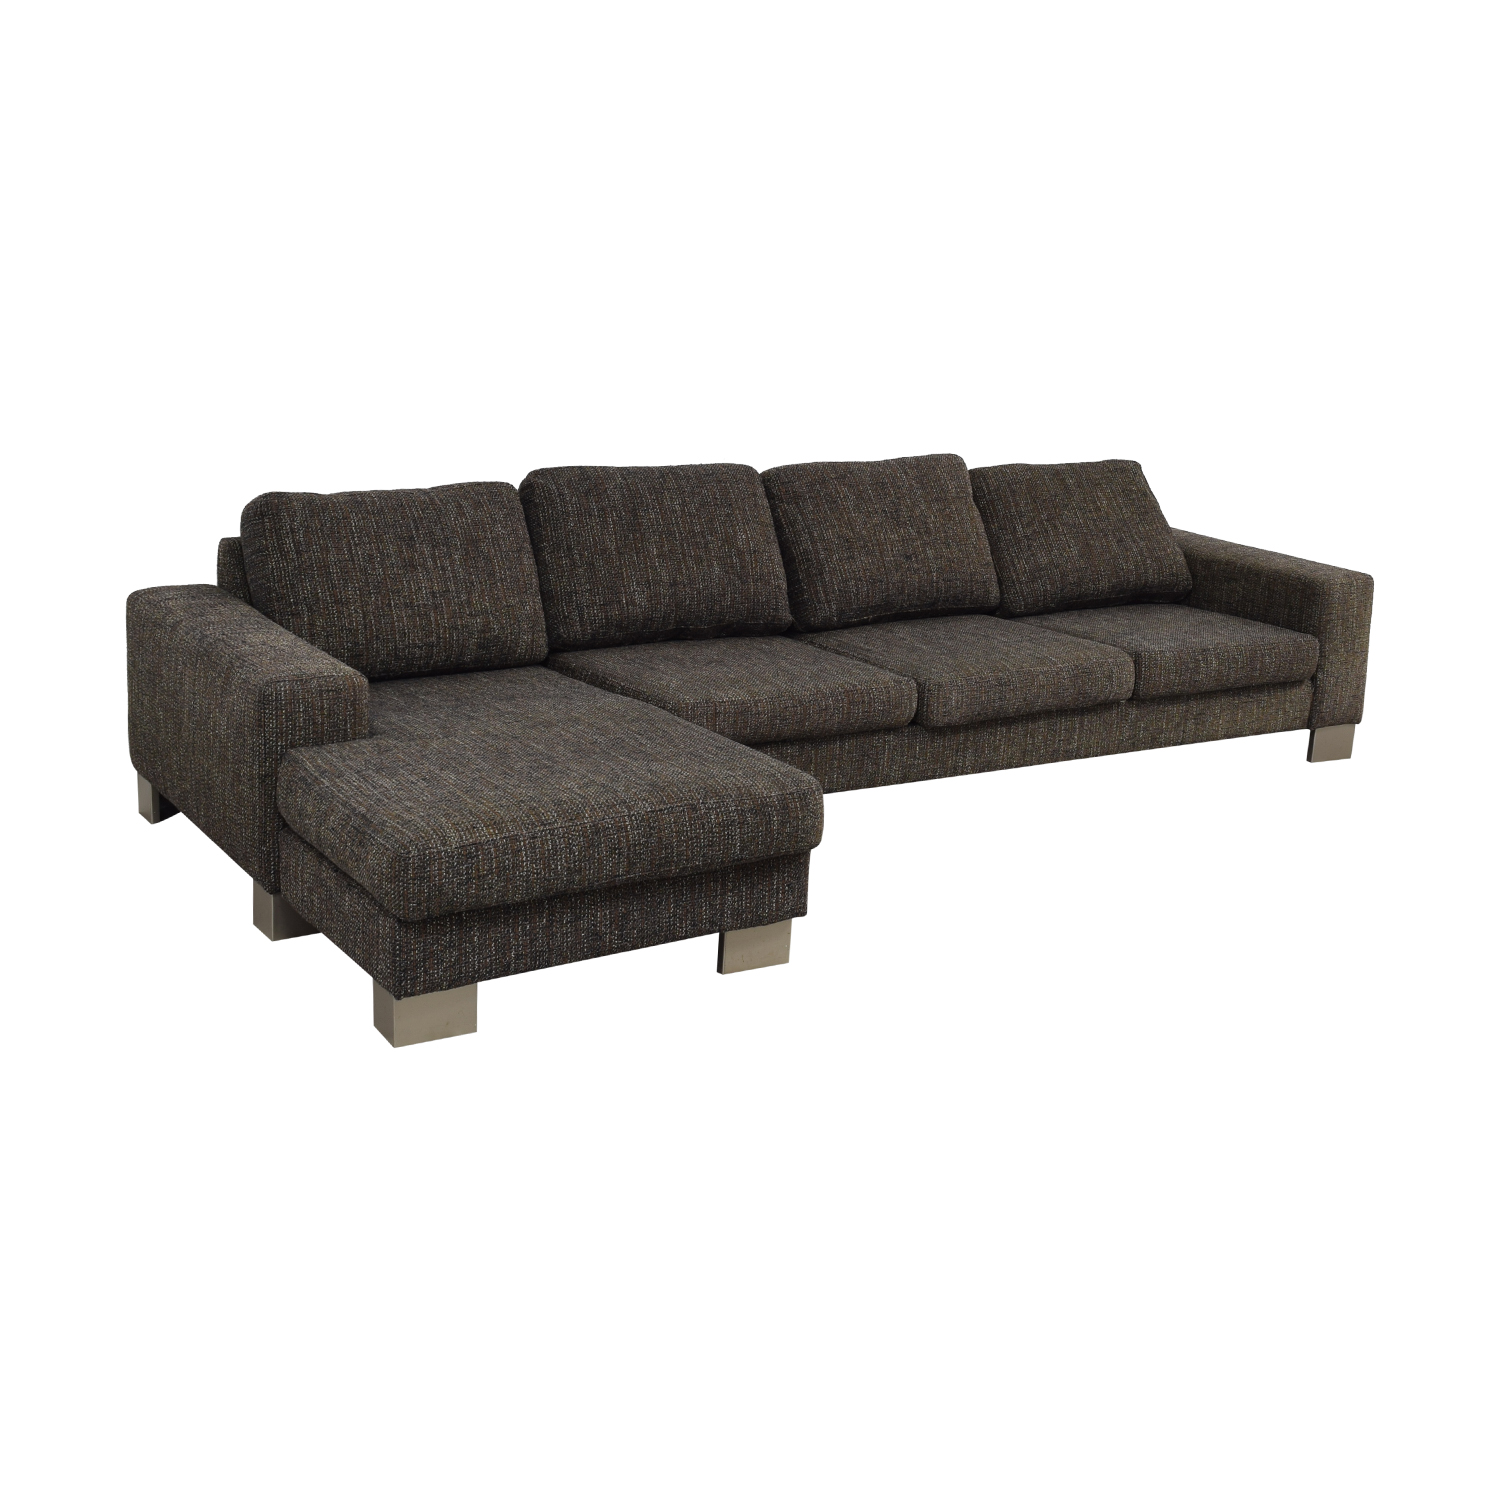 BoConcept BoConcept Brown Sectional Couch for sale